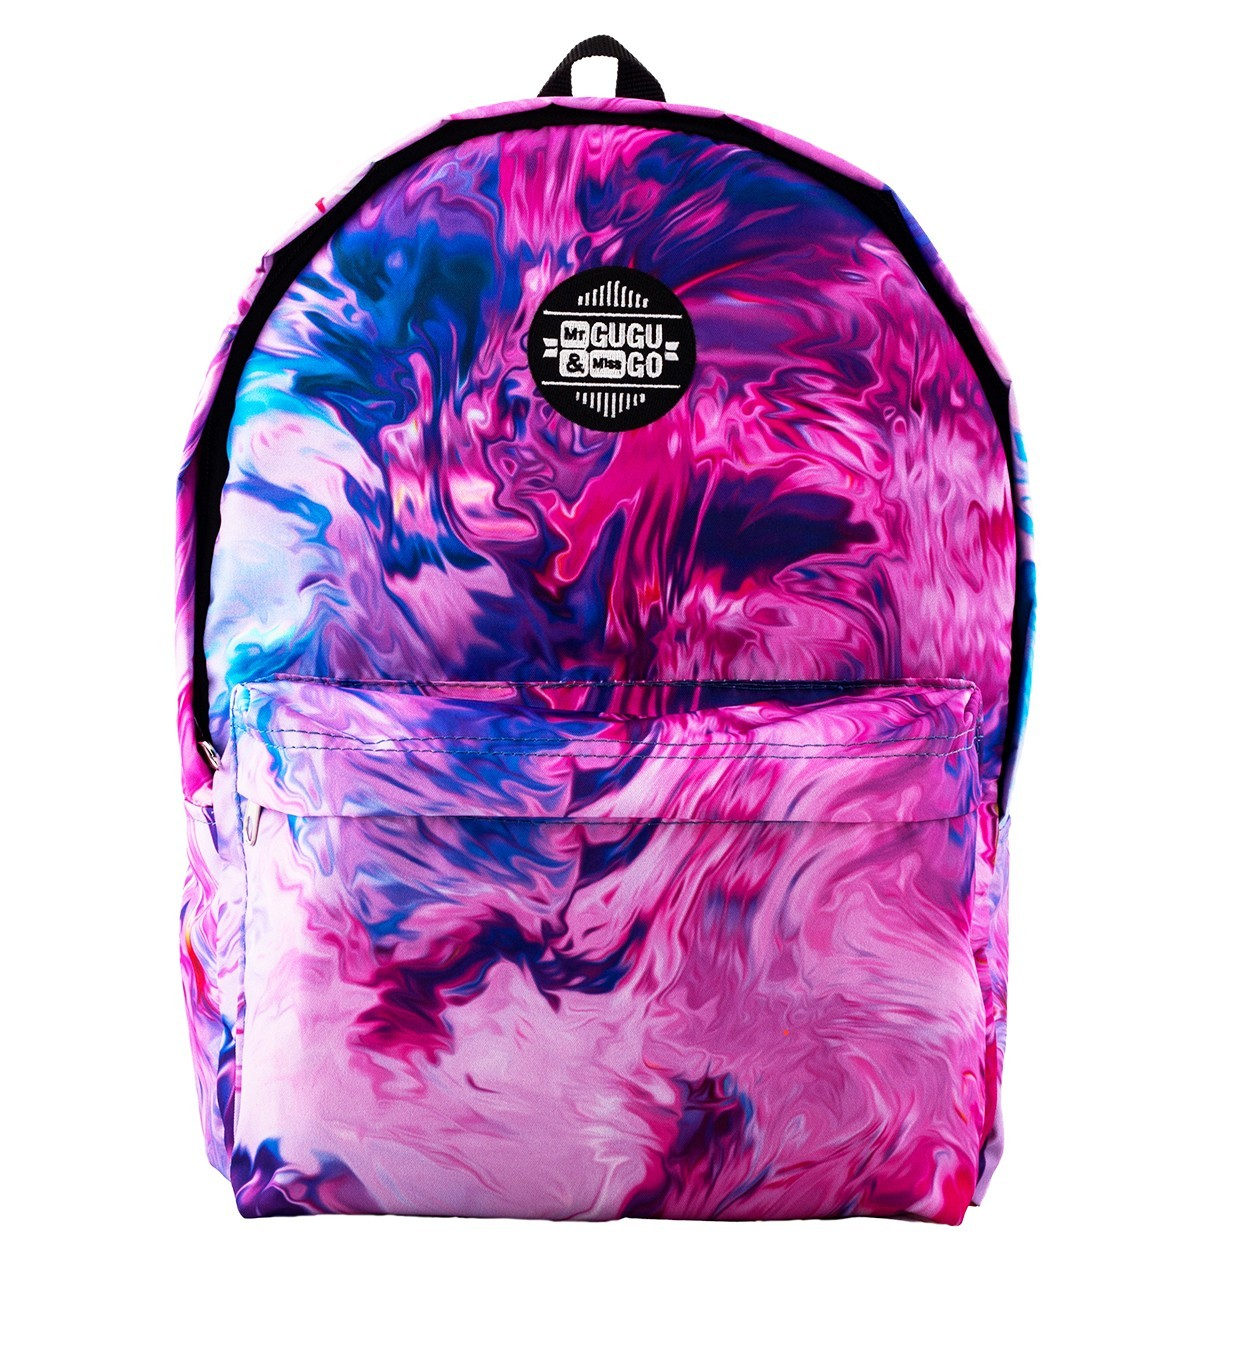 Printed Backpack Modern Painting Design | Mr. Gugu & Miss Go